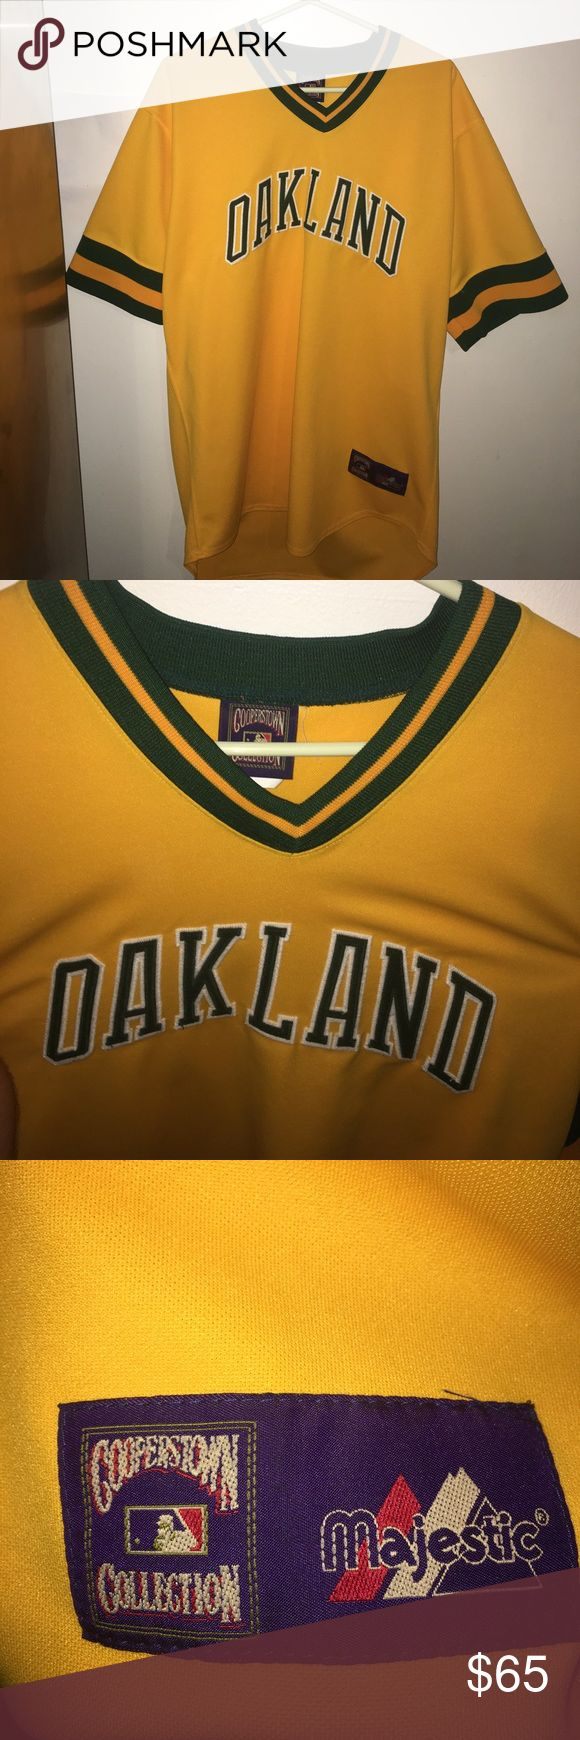 Oakland jersey Majestic size XL cooperston collection, no name on back just blank , send an offer, Oakland baseball Majestic Shirts Tees - Short Sleeve